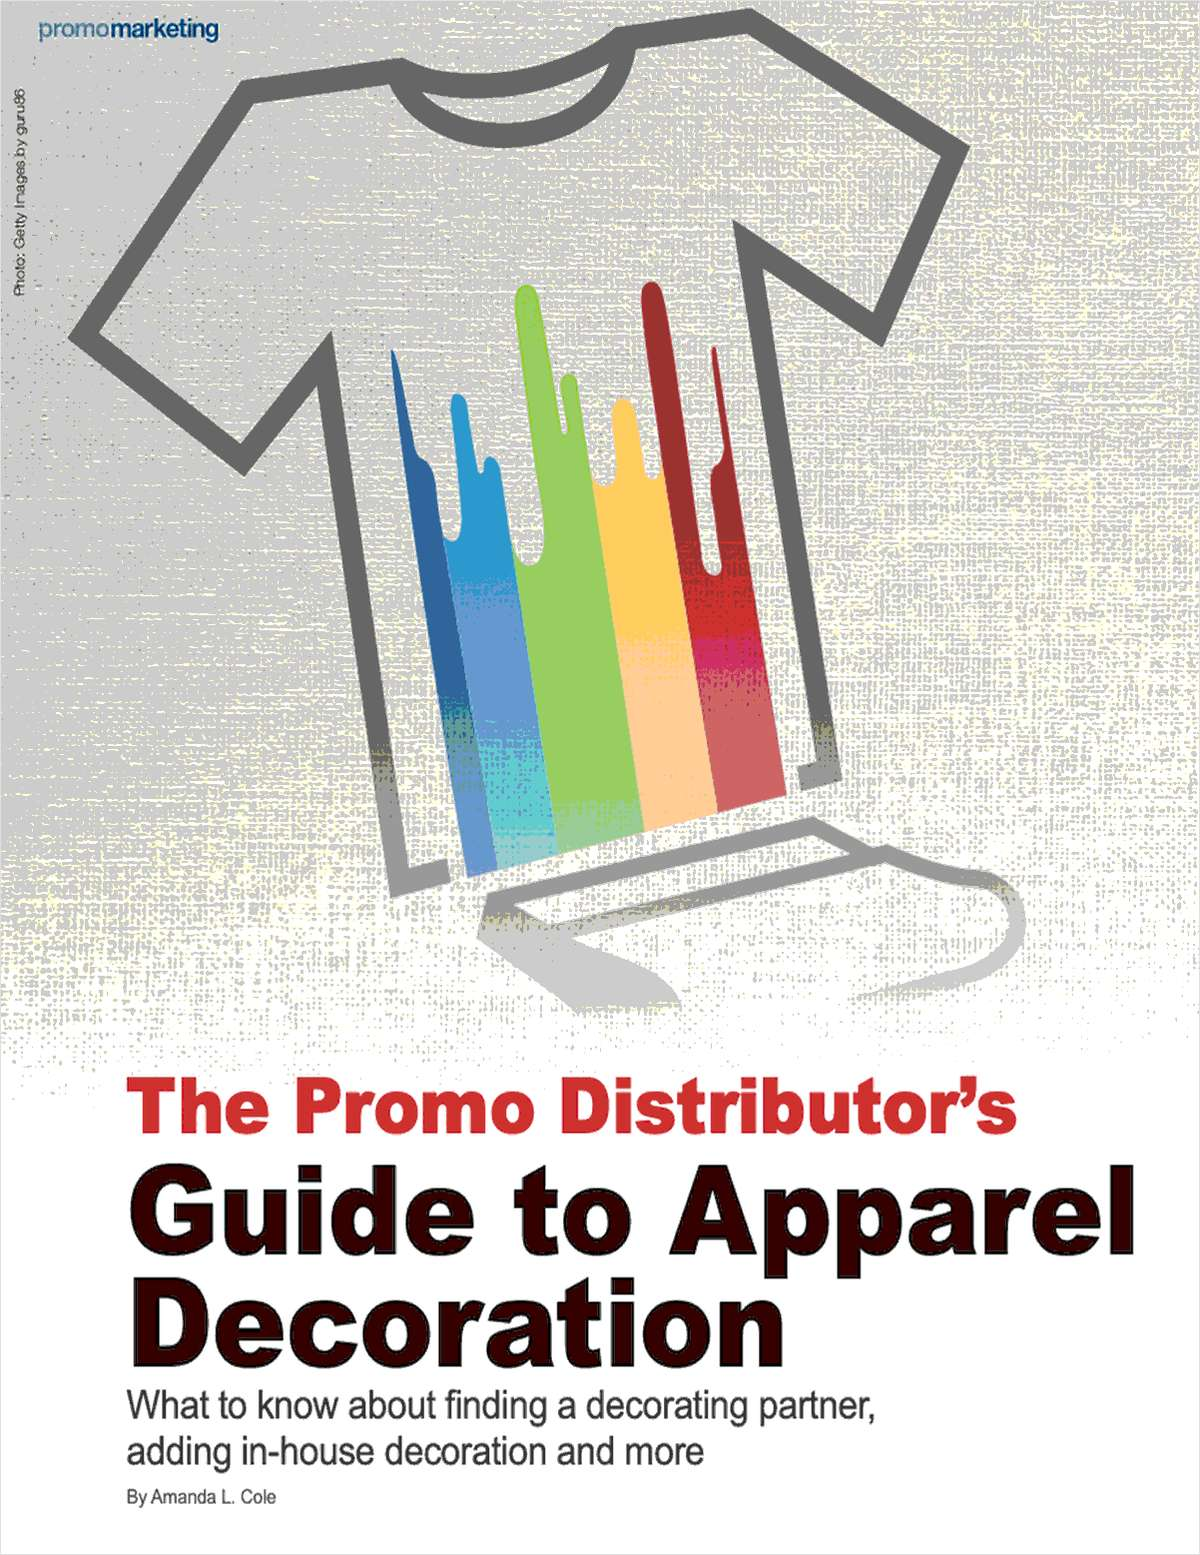 The Promo Distributor's Guide to Apparel Decoration